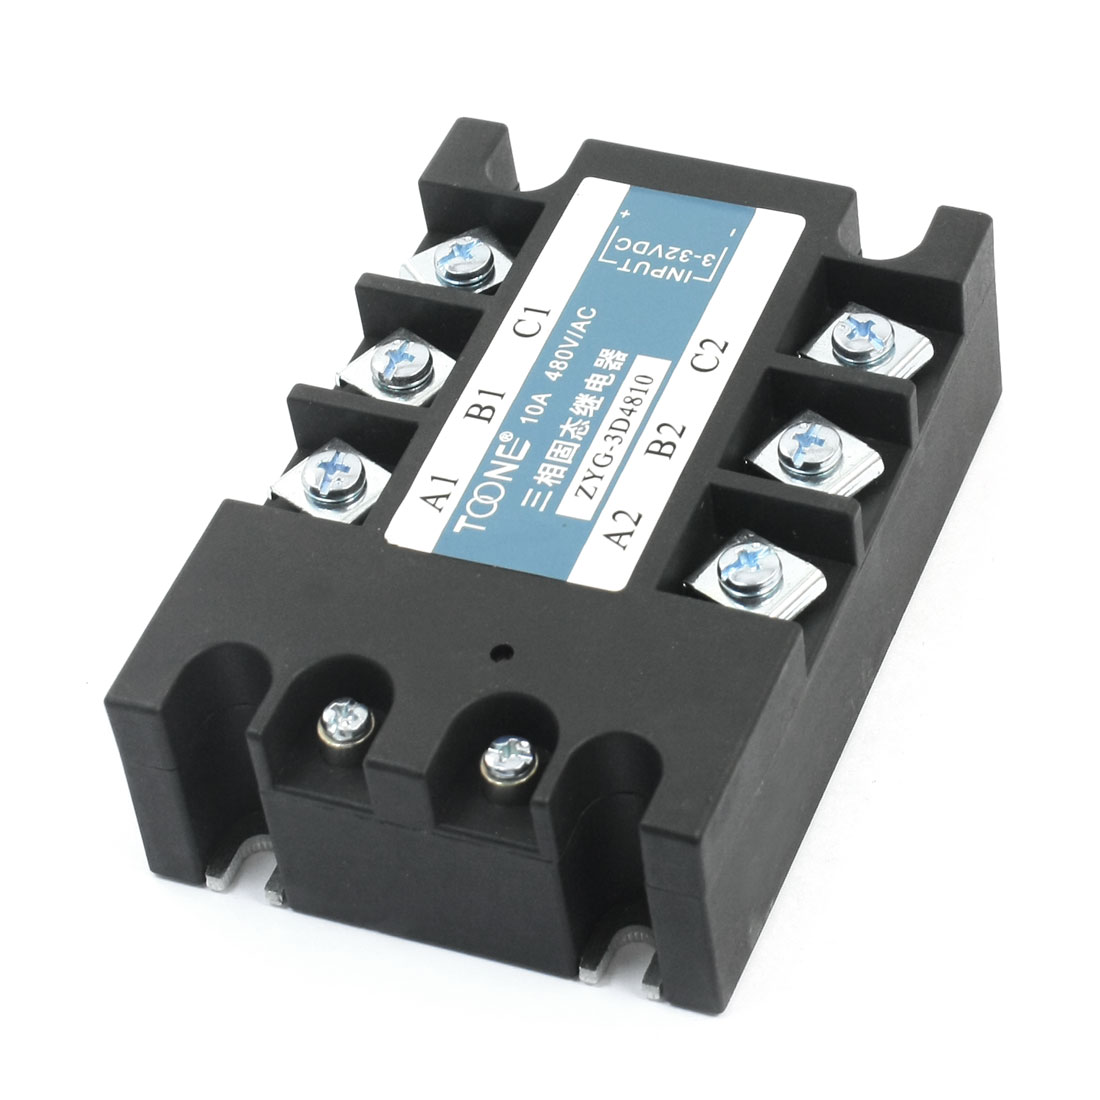 DC 3-32V Input AC 480V 10A Output Red LED Indicator 6 Screw Terminals 3 Phase Metal Base SSR Solid State Relay